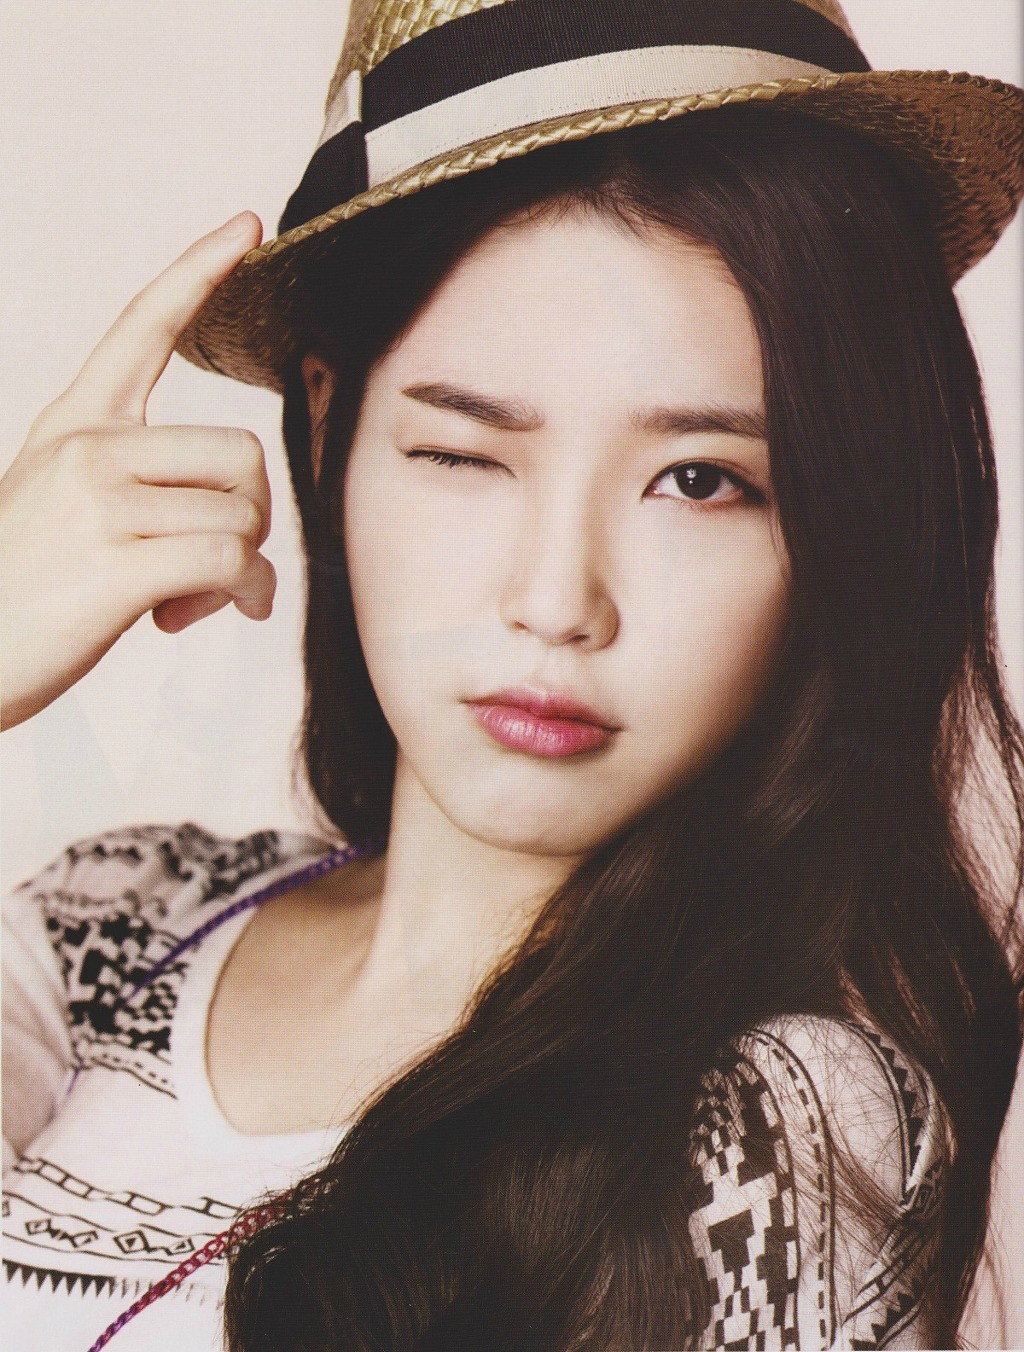 ... feat iu collaboration gift various artists feat iu album road for hope